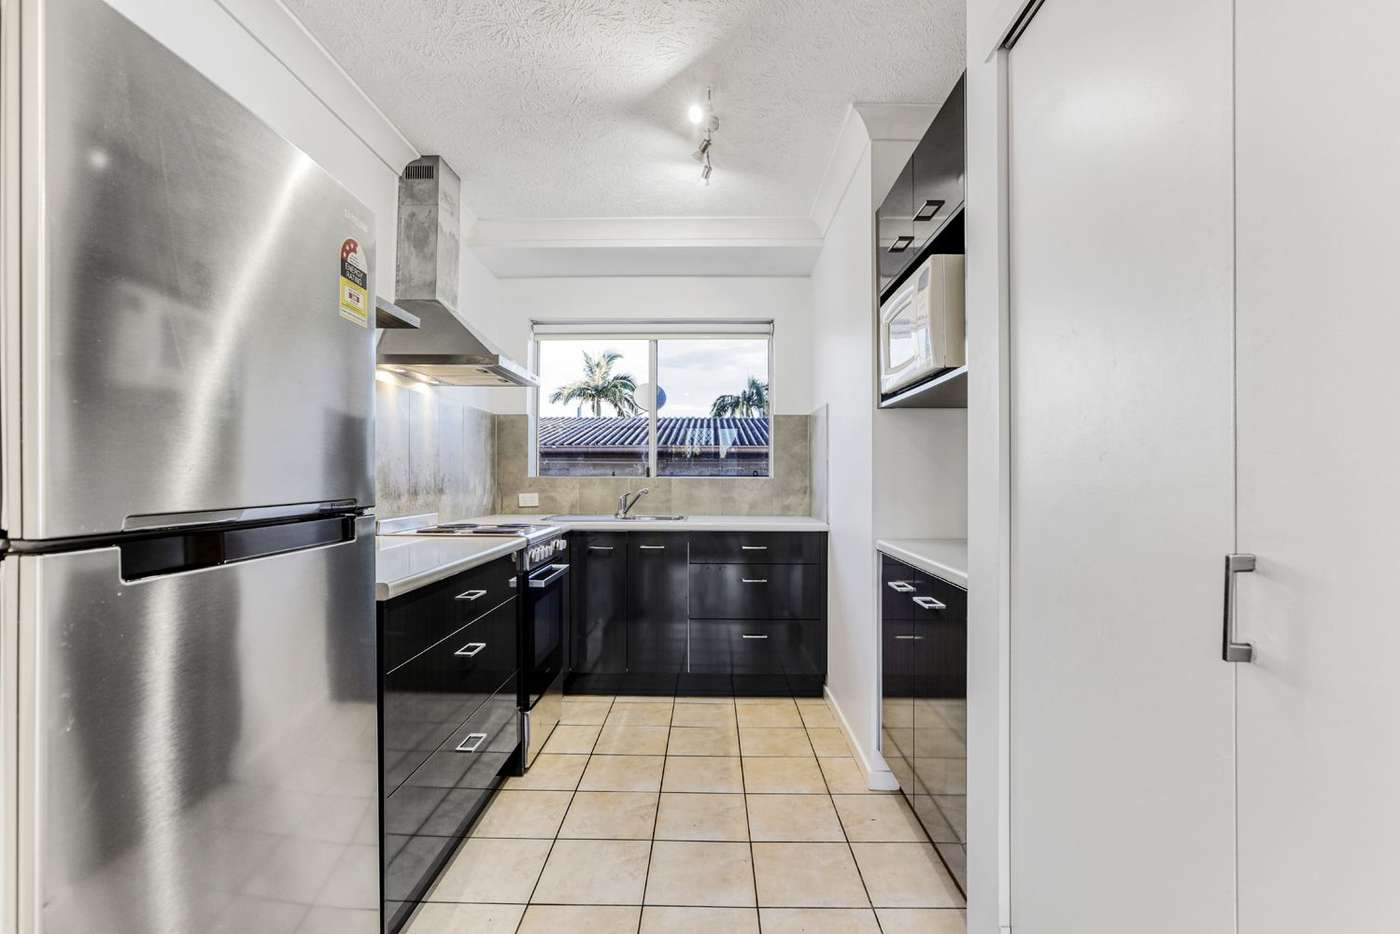 Main view of Homely unit listing, 11/25-27 Darrambal Street, Surfers Paradise QLD 4217